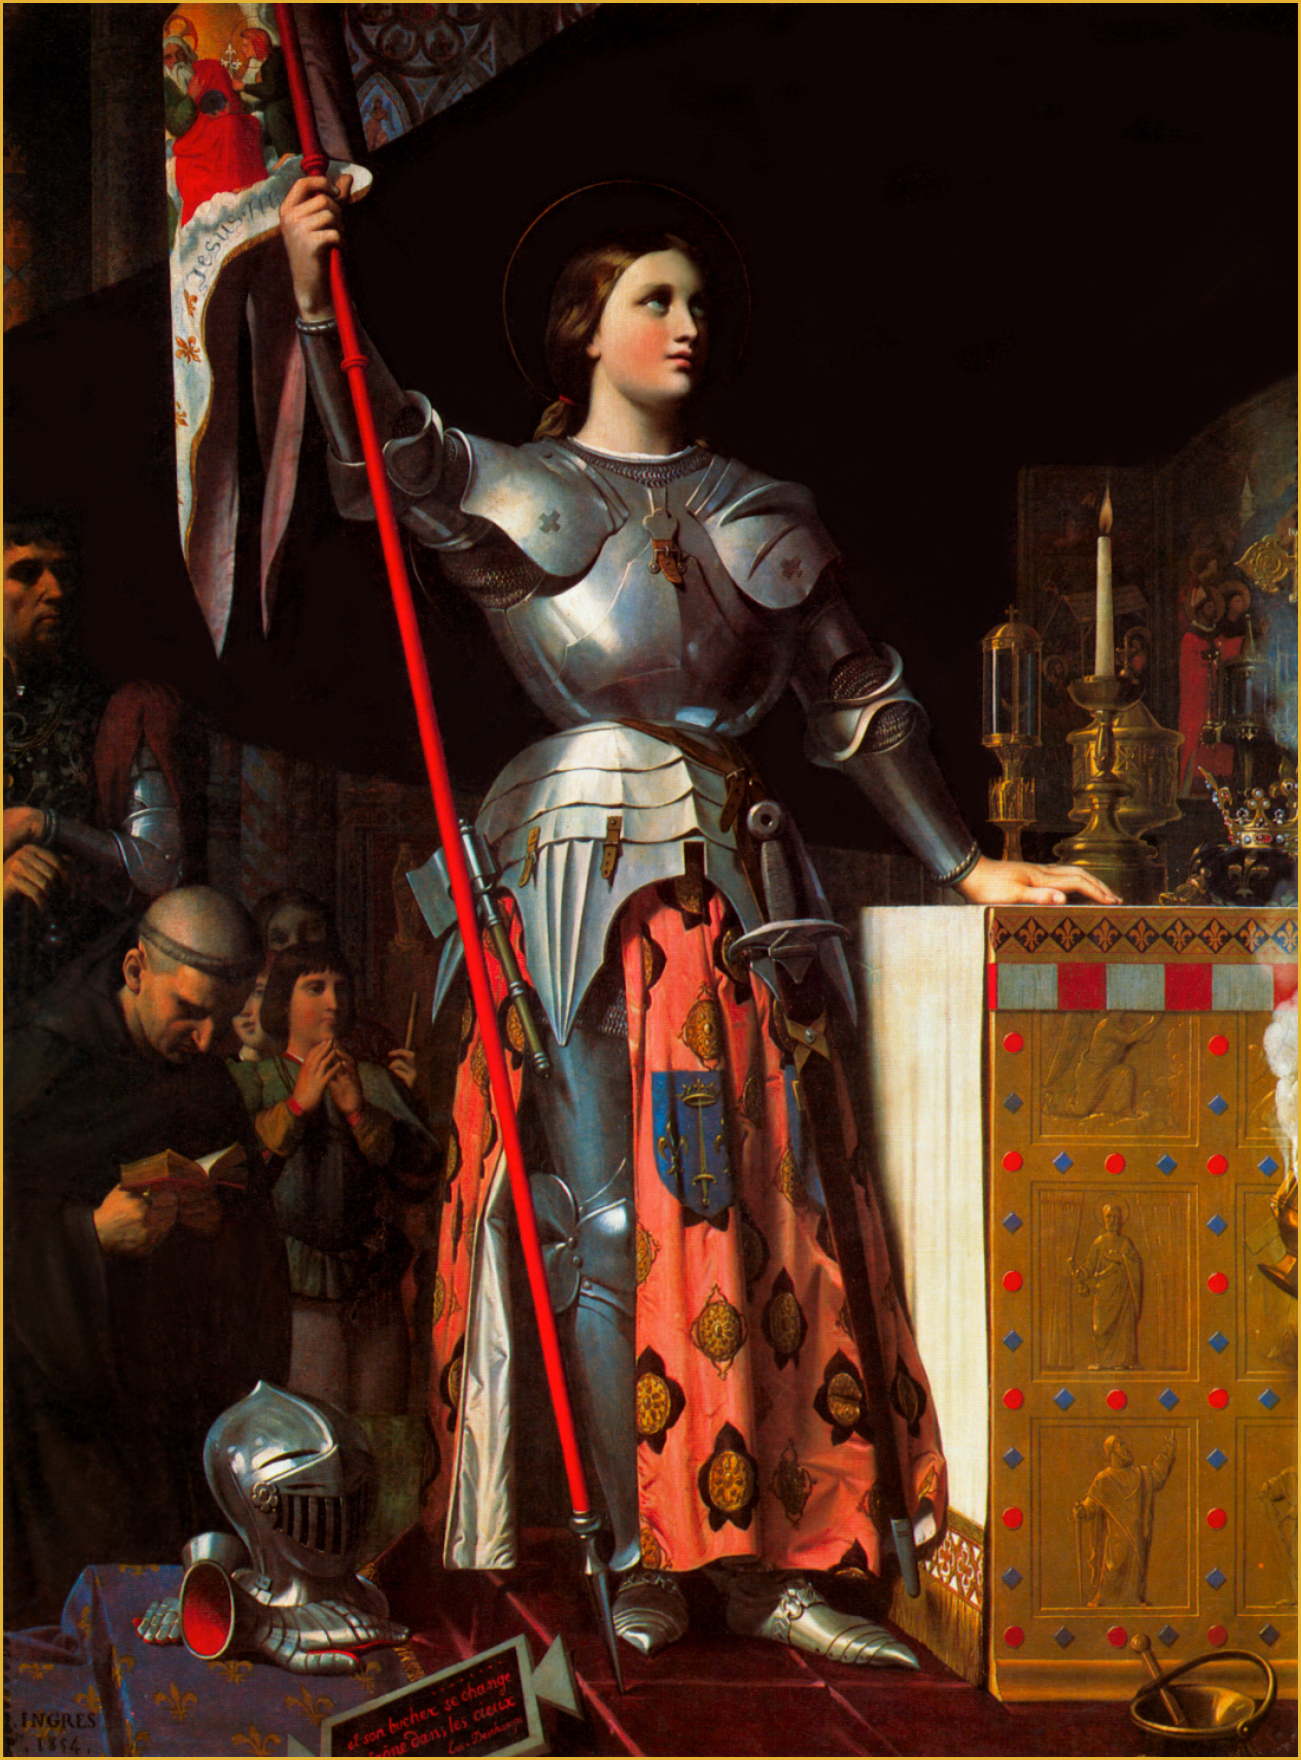 How does the joan of arc inquisition compare to now?